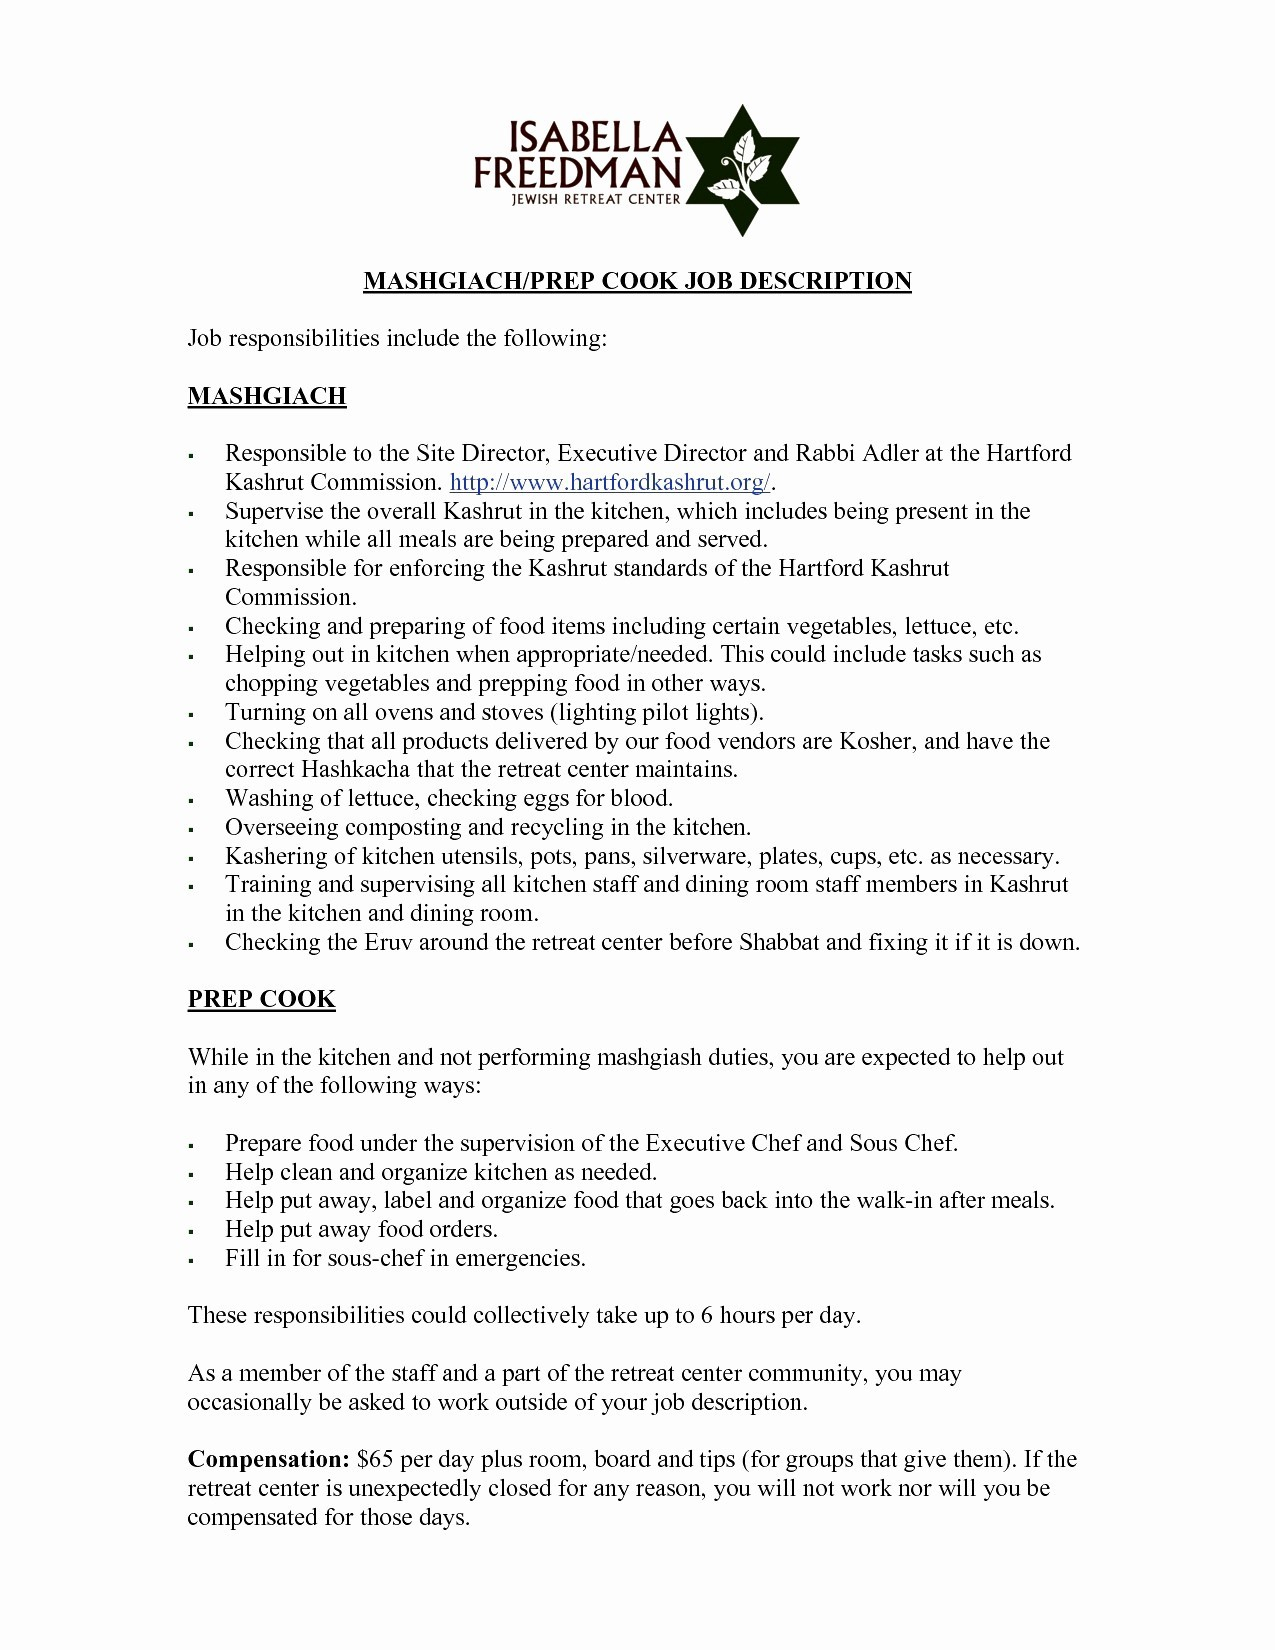 Free Cover Letter Template Google Docs - Free Resume Templates Google Docs New Luxury Cover Letter Template